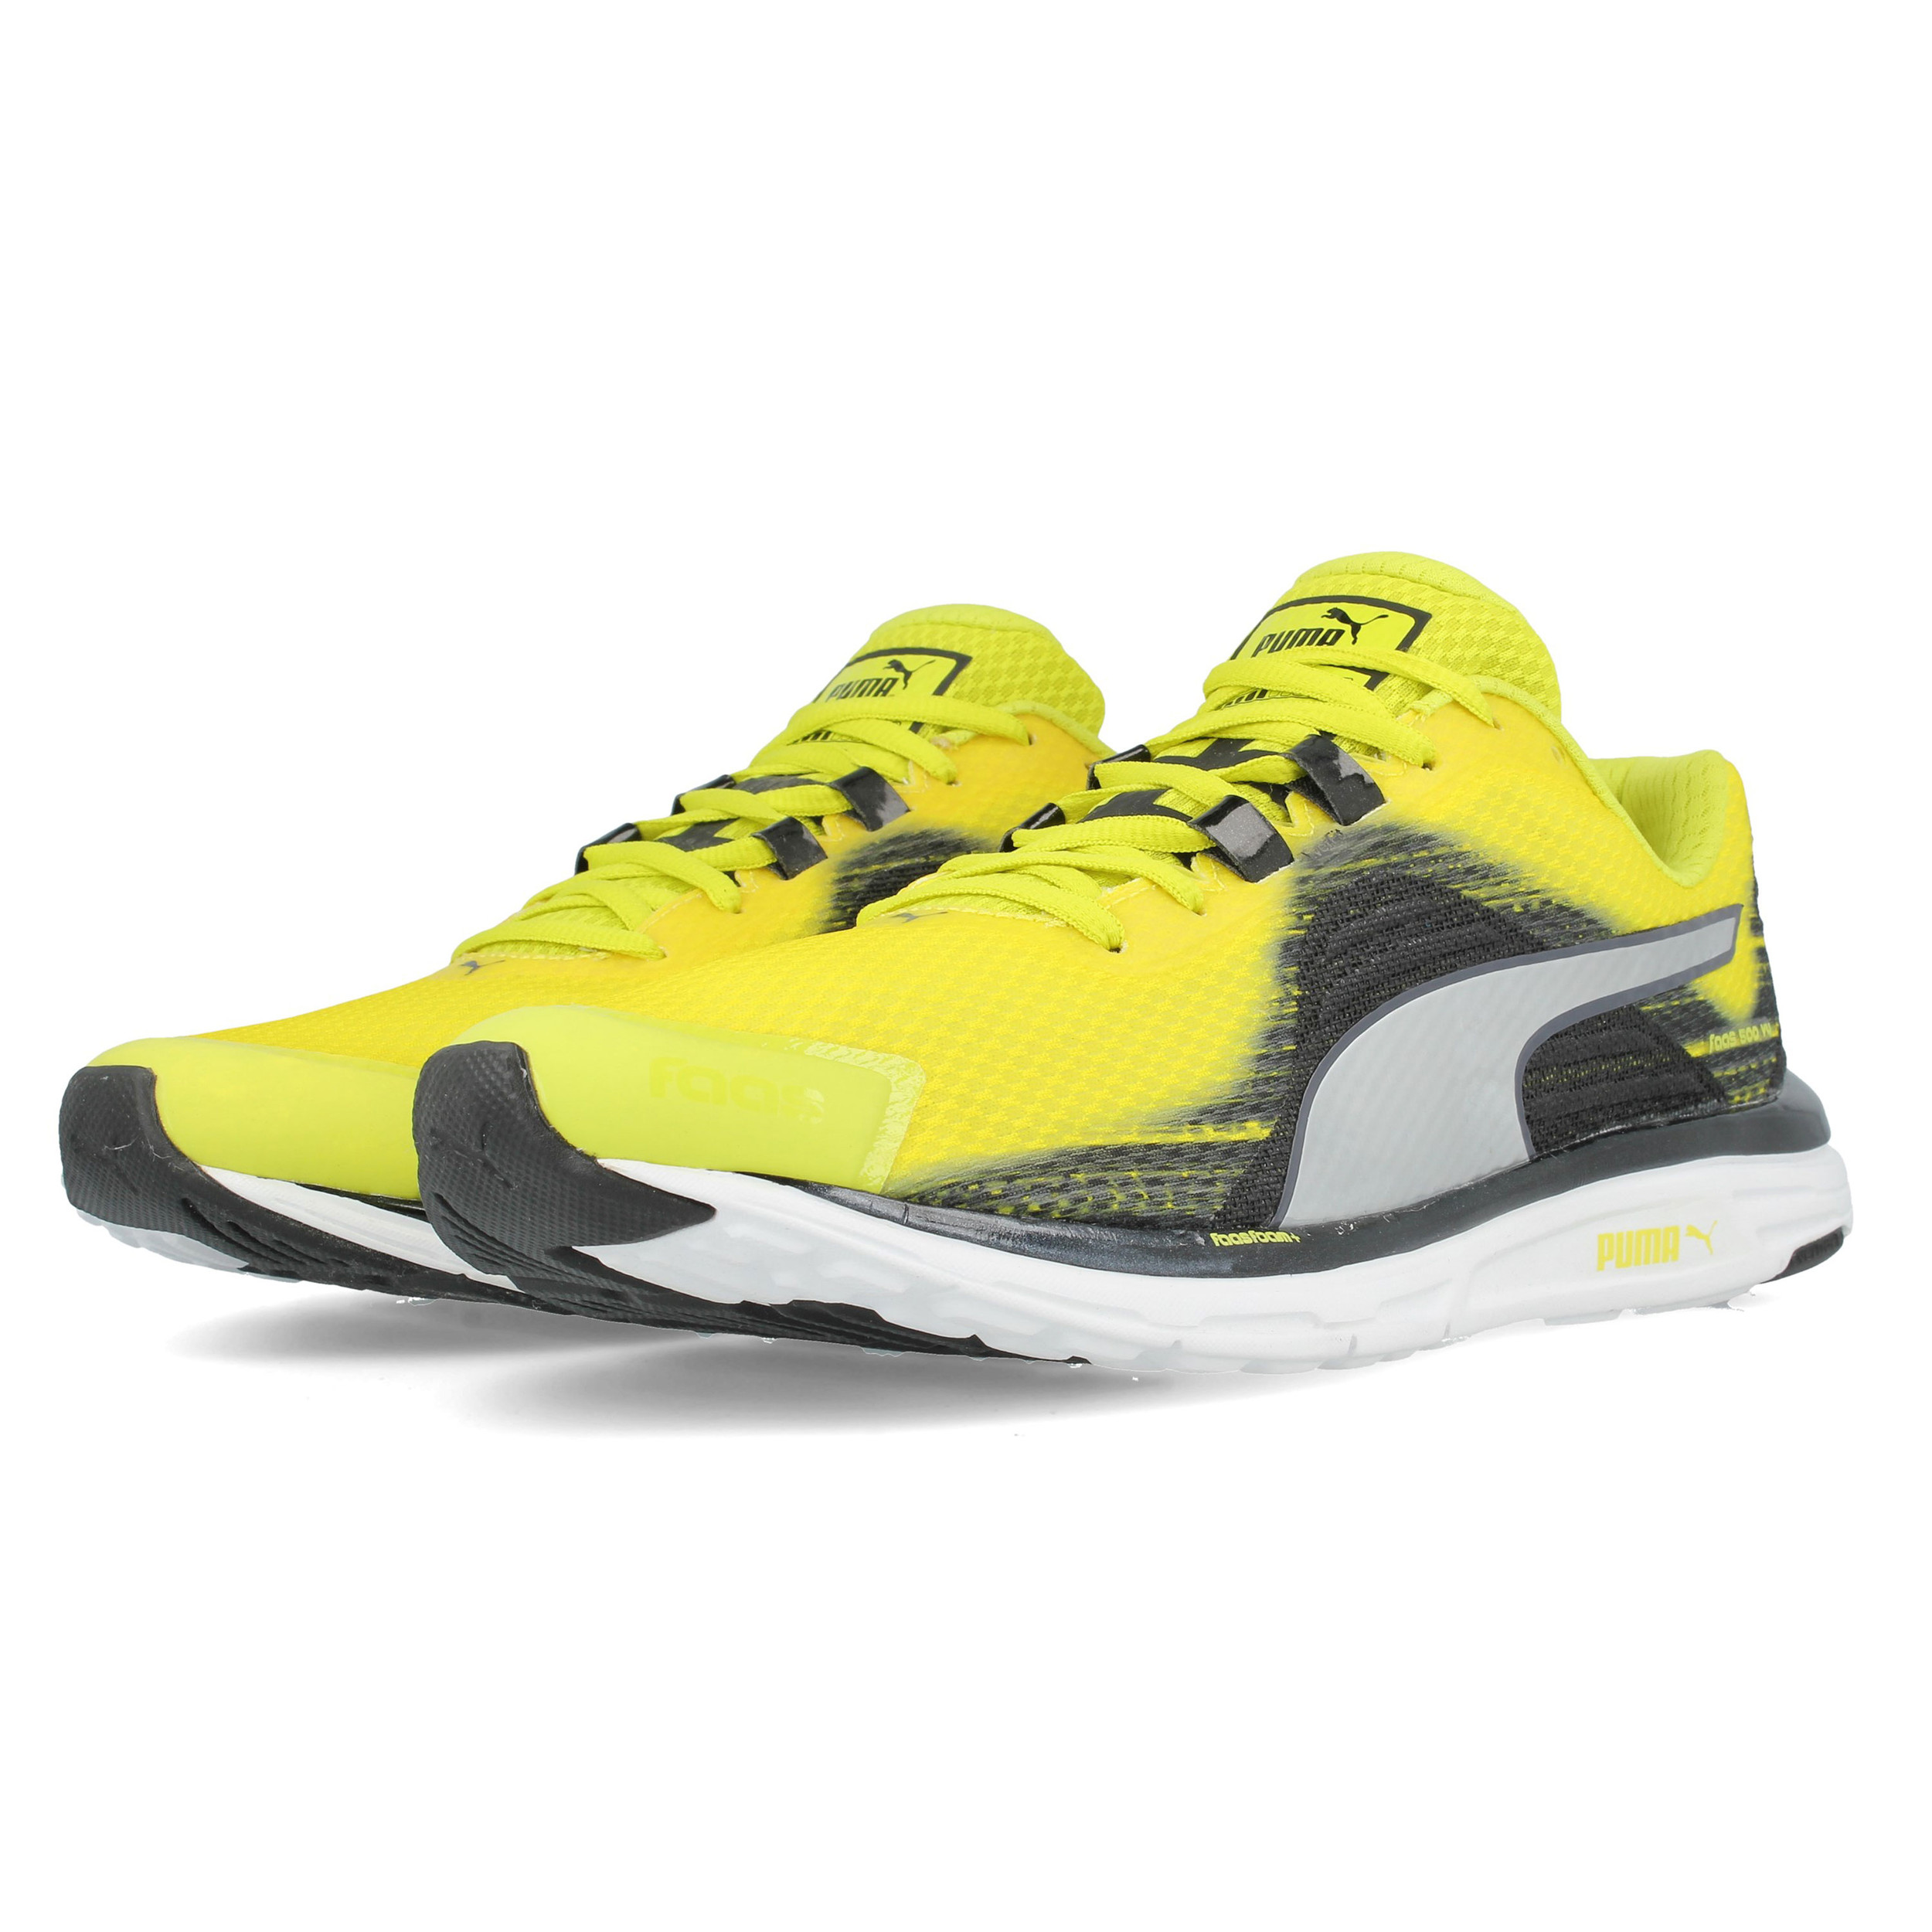 Puma Mens Faas 500v4 Running Shoes Trainers Sneakers Yellow Sports  Breathable 6878c1455bc